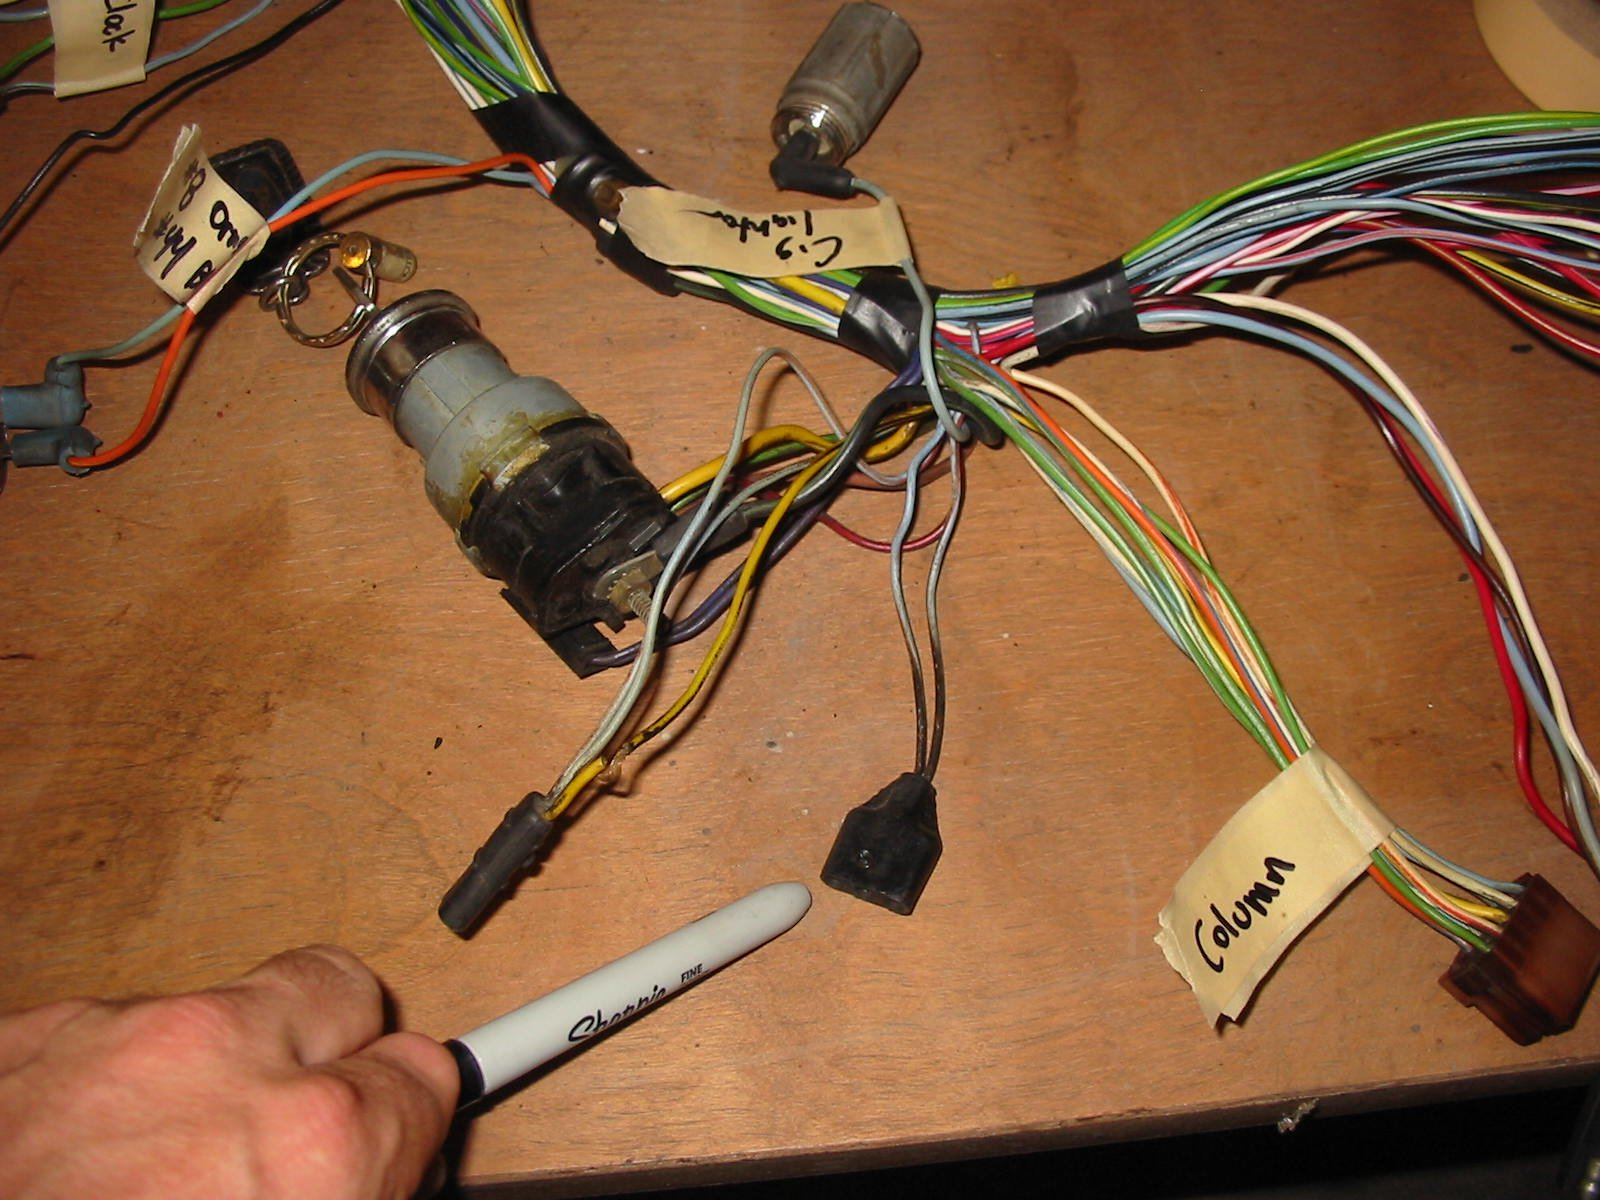 1969 ford mustang ignition switch wiring diagram 1969 68 mustang ignition switch wiring 68 auto wiring diagram schematic on 1969 ford mustang ignition switch